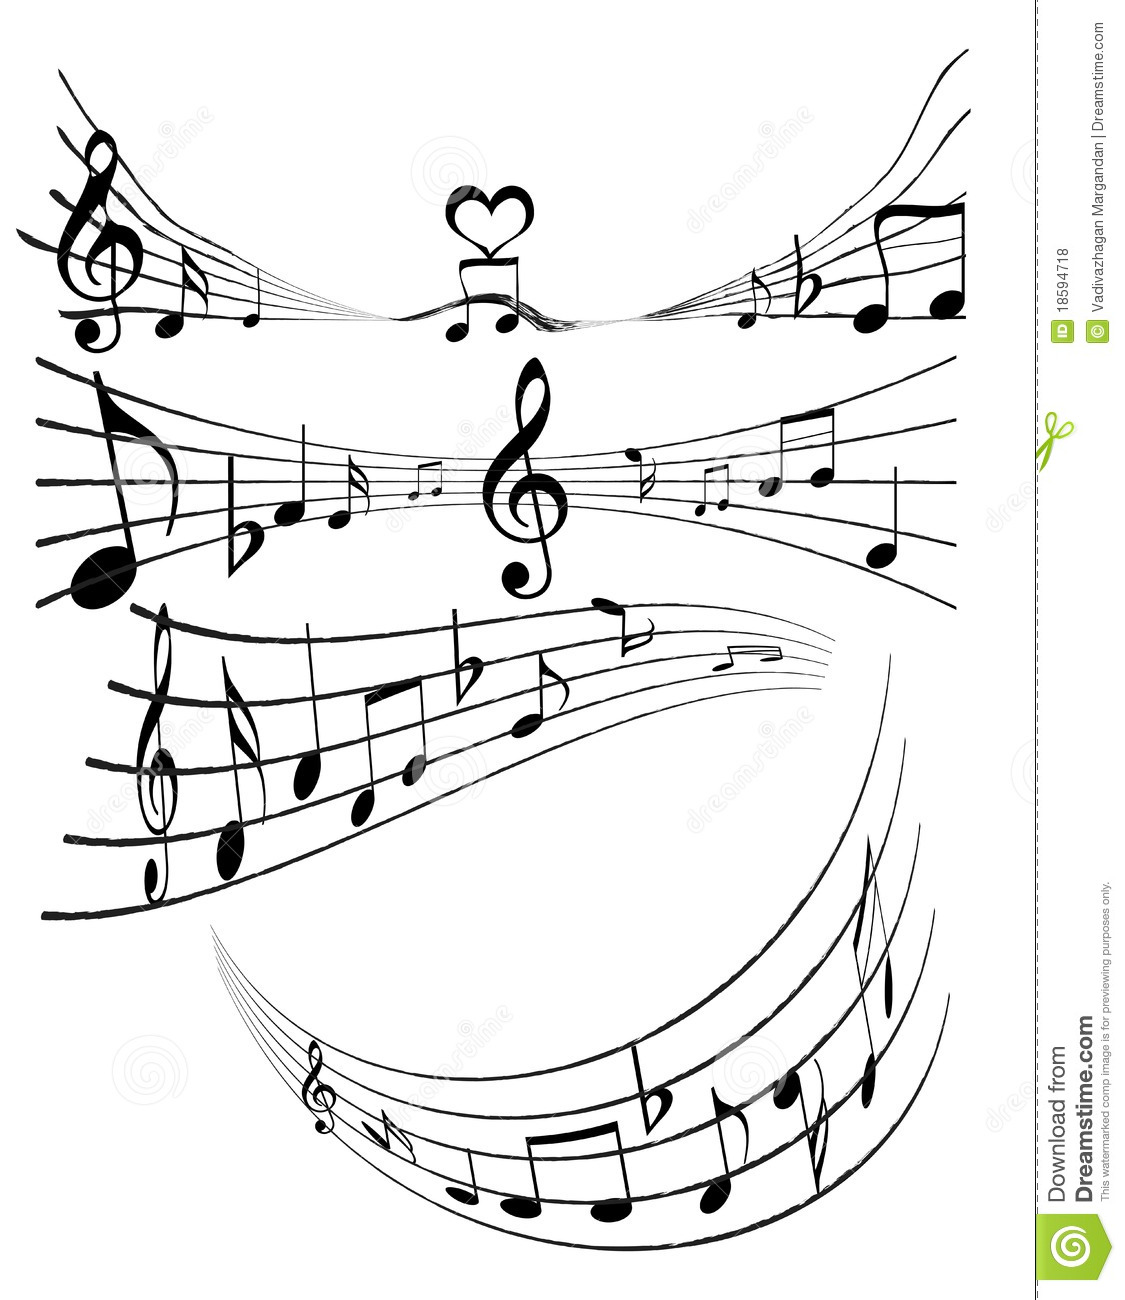 Music notes stock illustration. Image of isolated, half